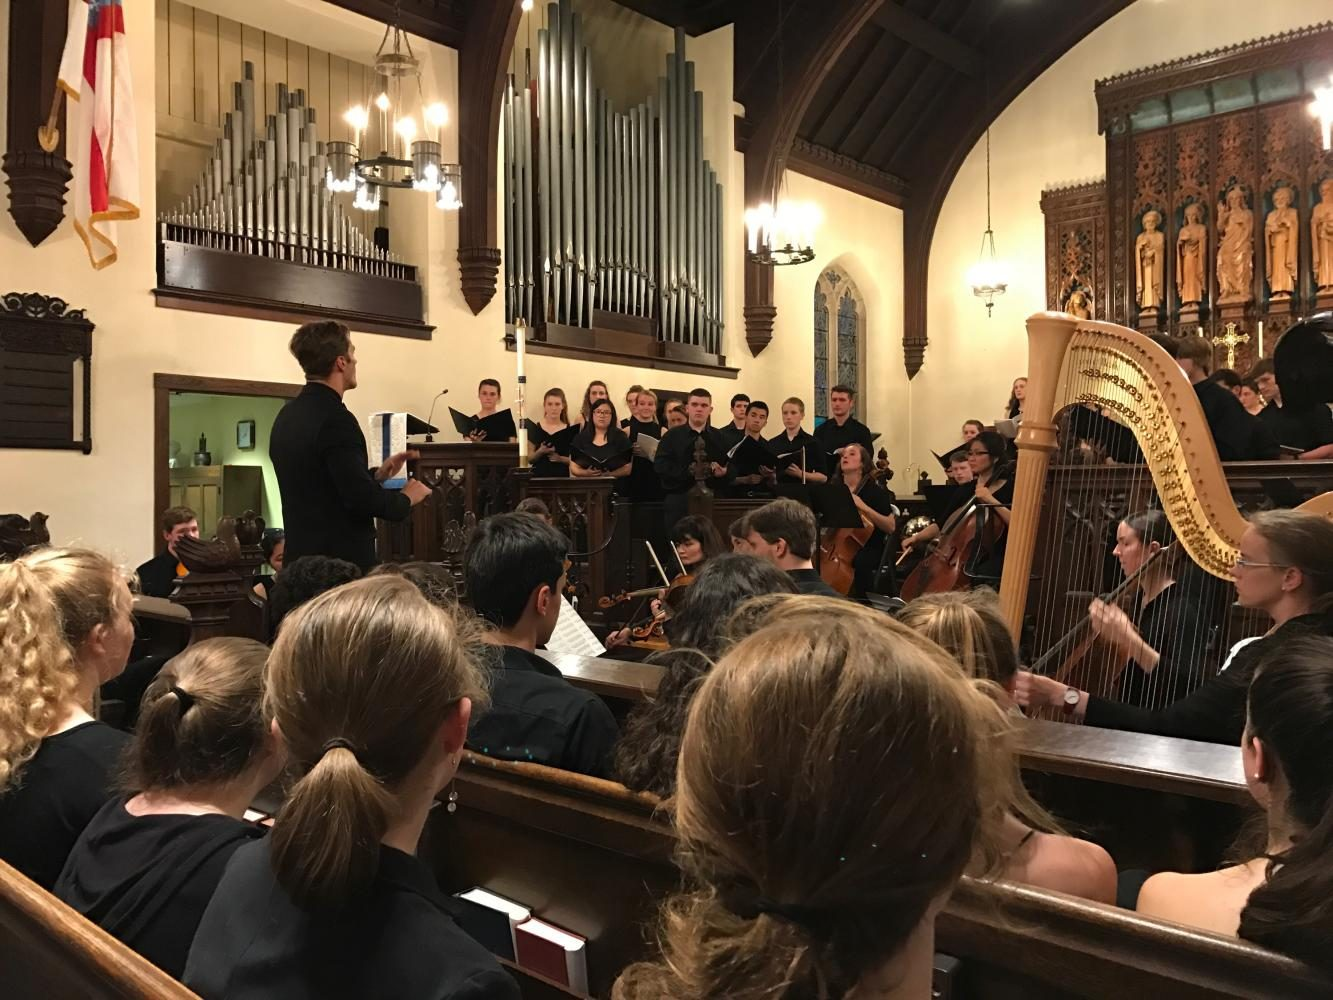 Joseph Young directs Mixed Chorus during their performance of the Fauré Requiem.